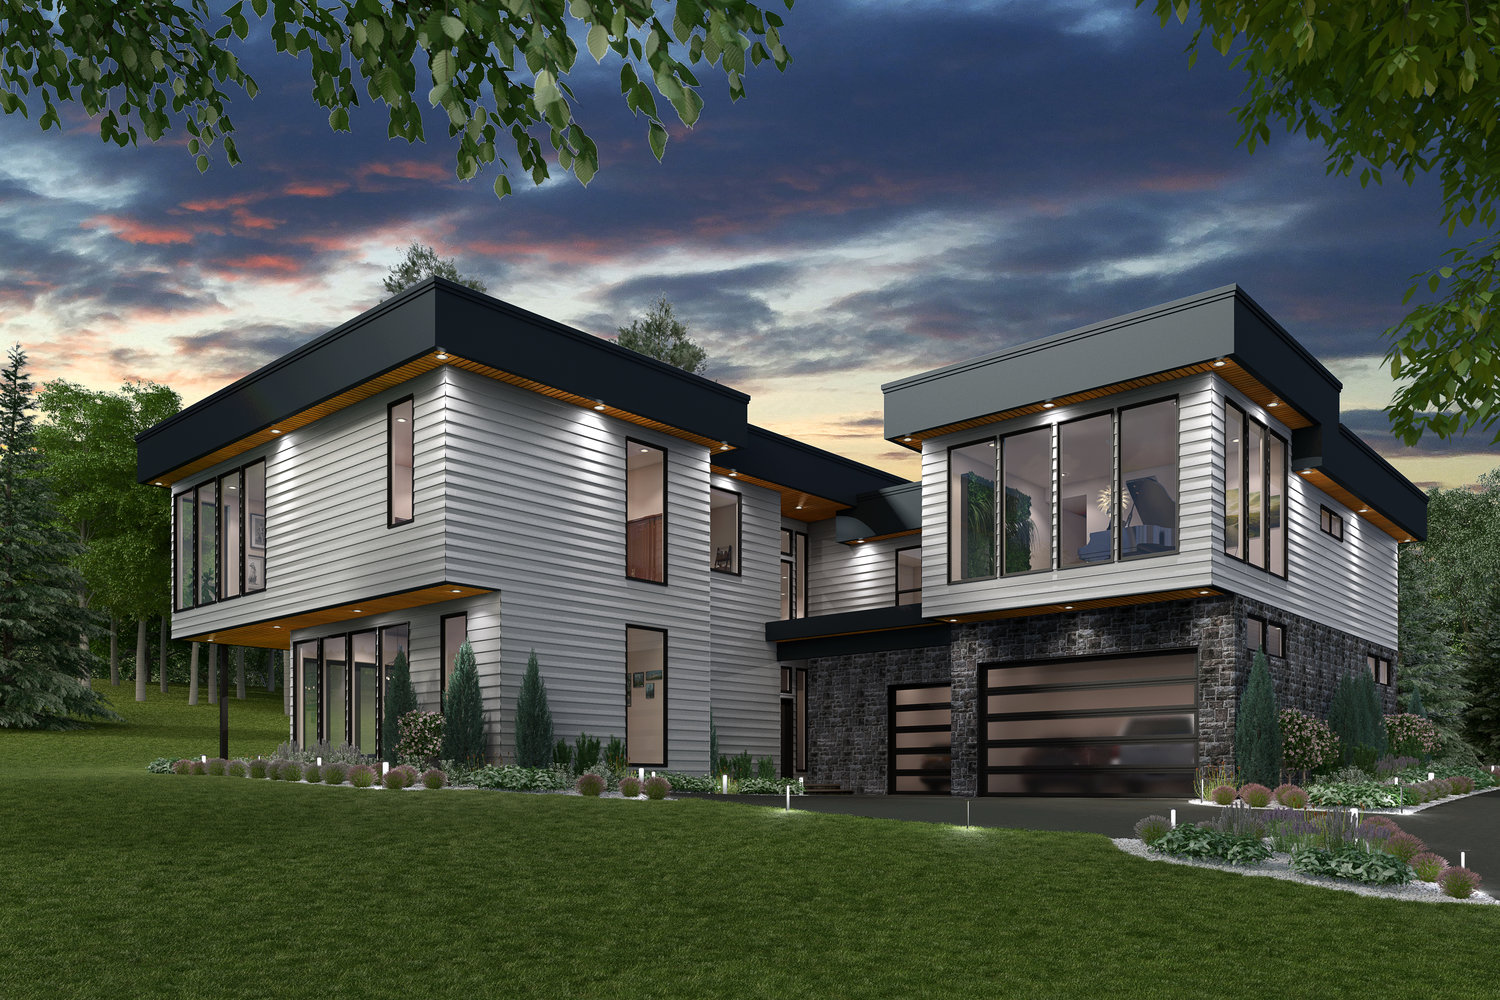 concept home - Located in Ashley Point - Click for Details